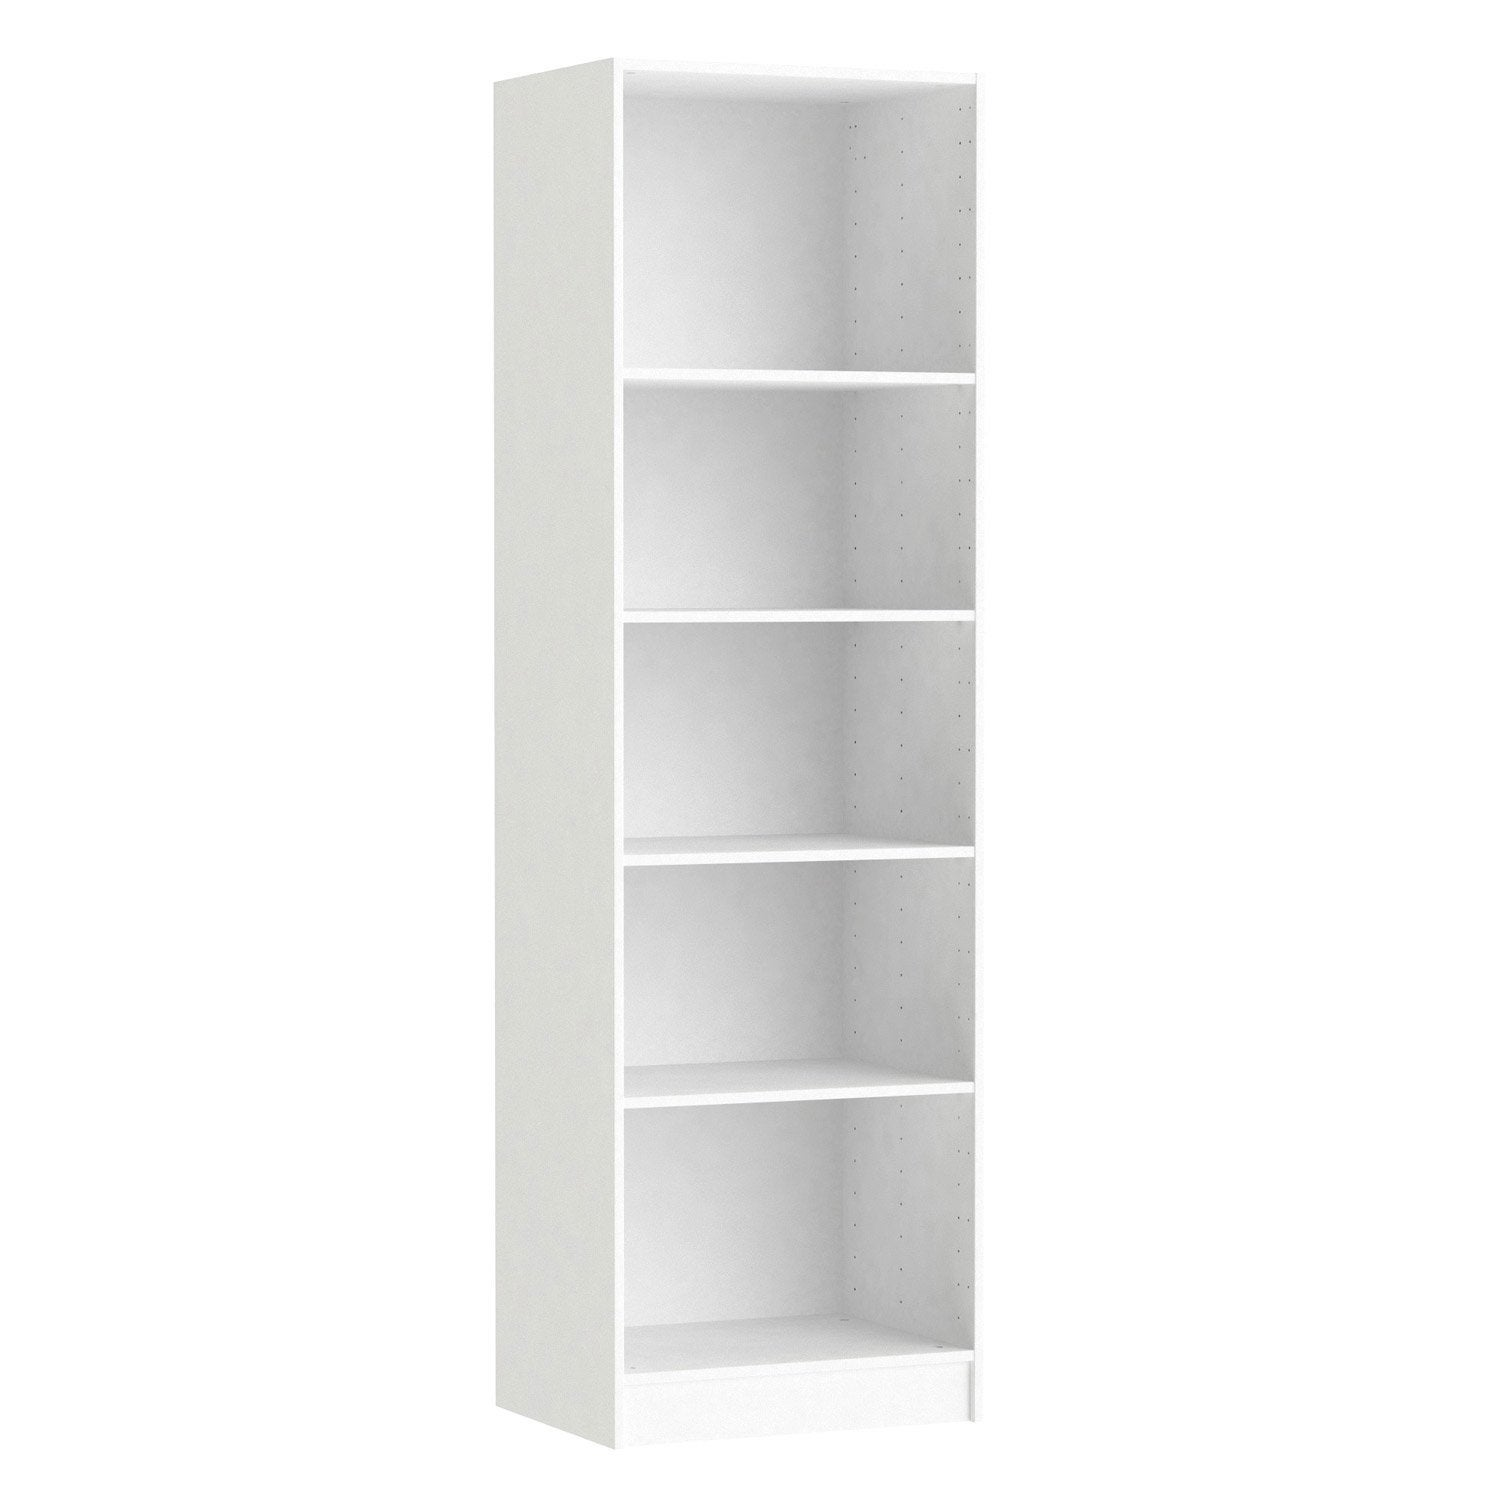 Caisson spaceo home 200 x 60 x 45 cm blanc leroy merlin - Kit amenagement placard leroy merlin ...